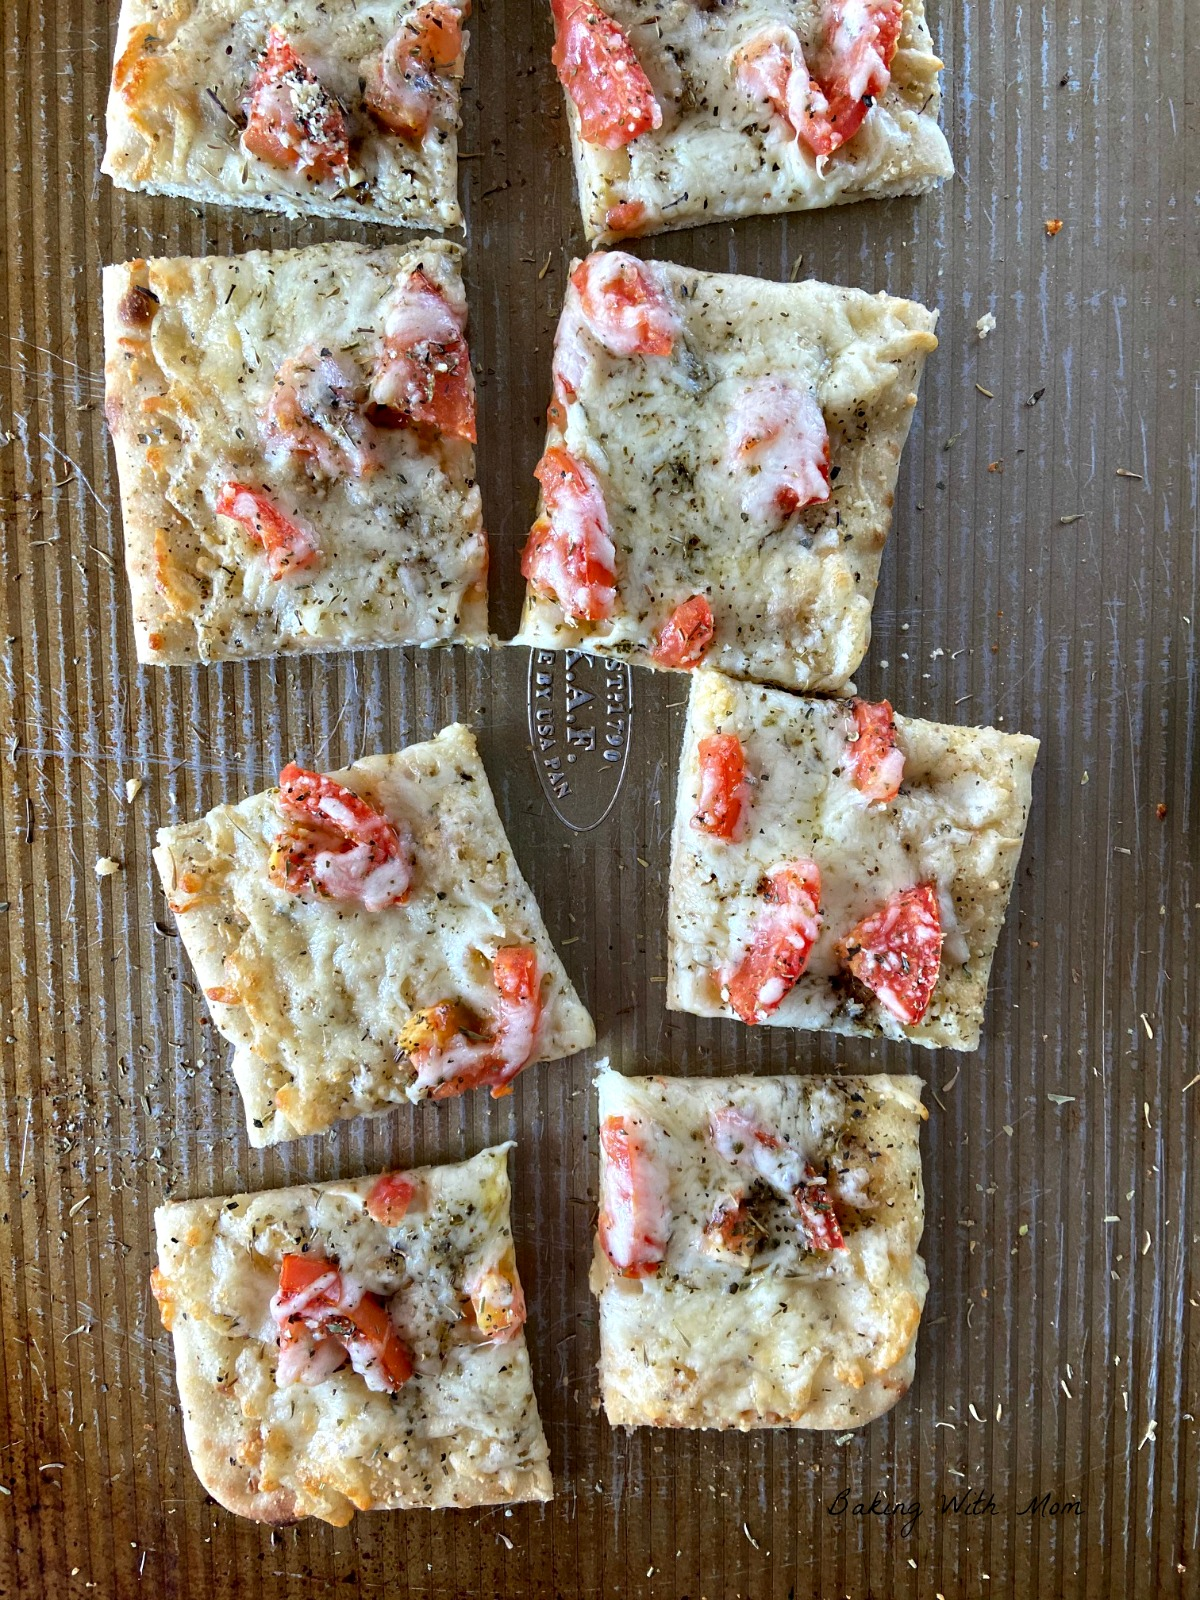 Pieces of flatbread on a baking sheet with tomato, cheese and spices